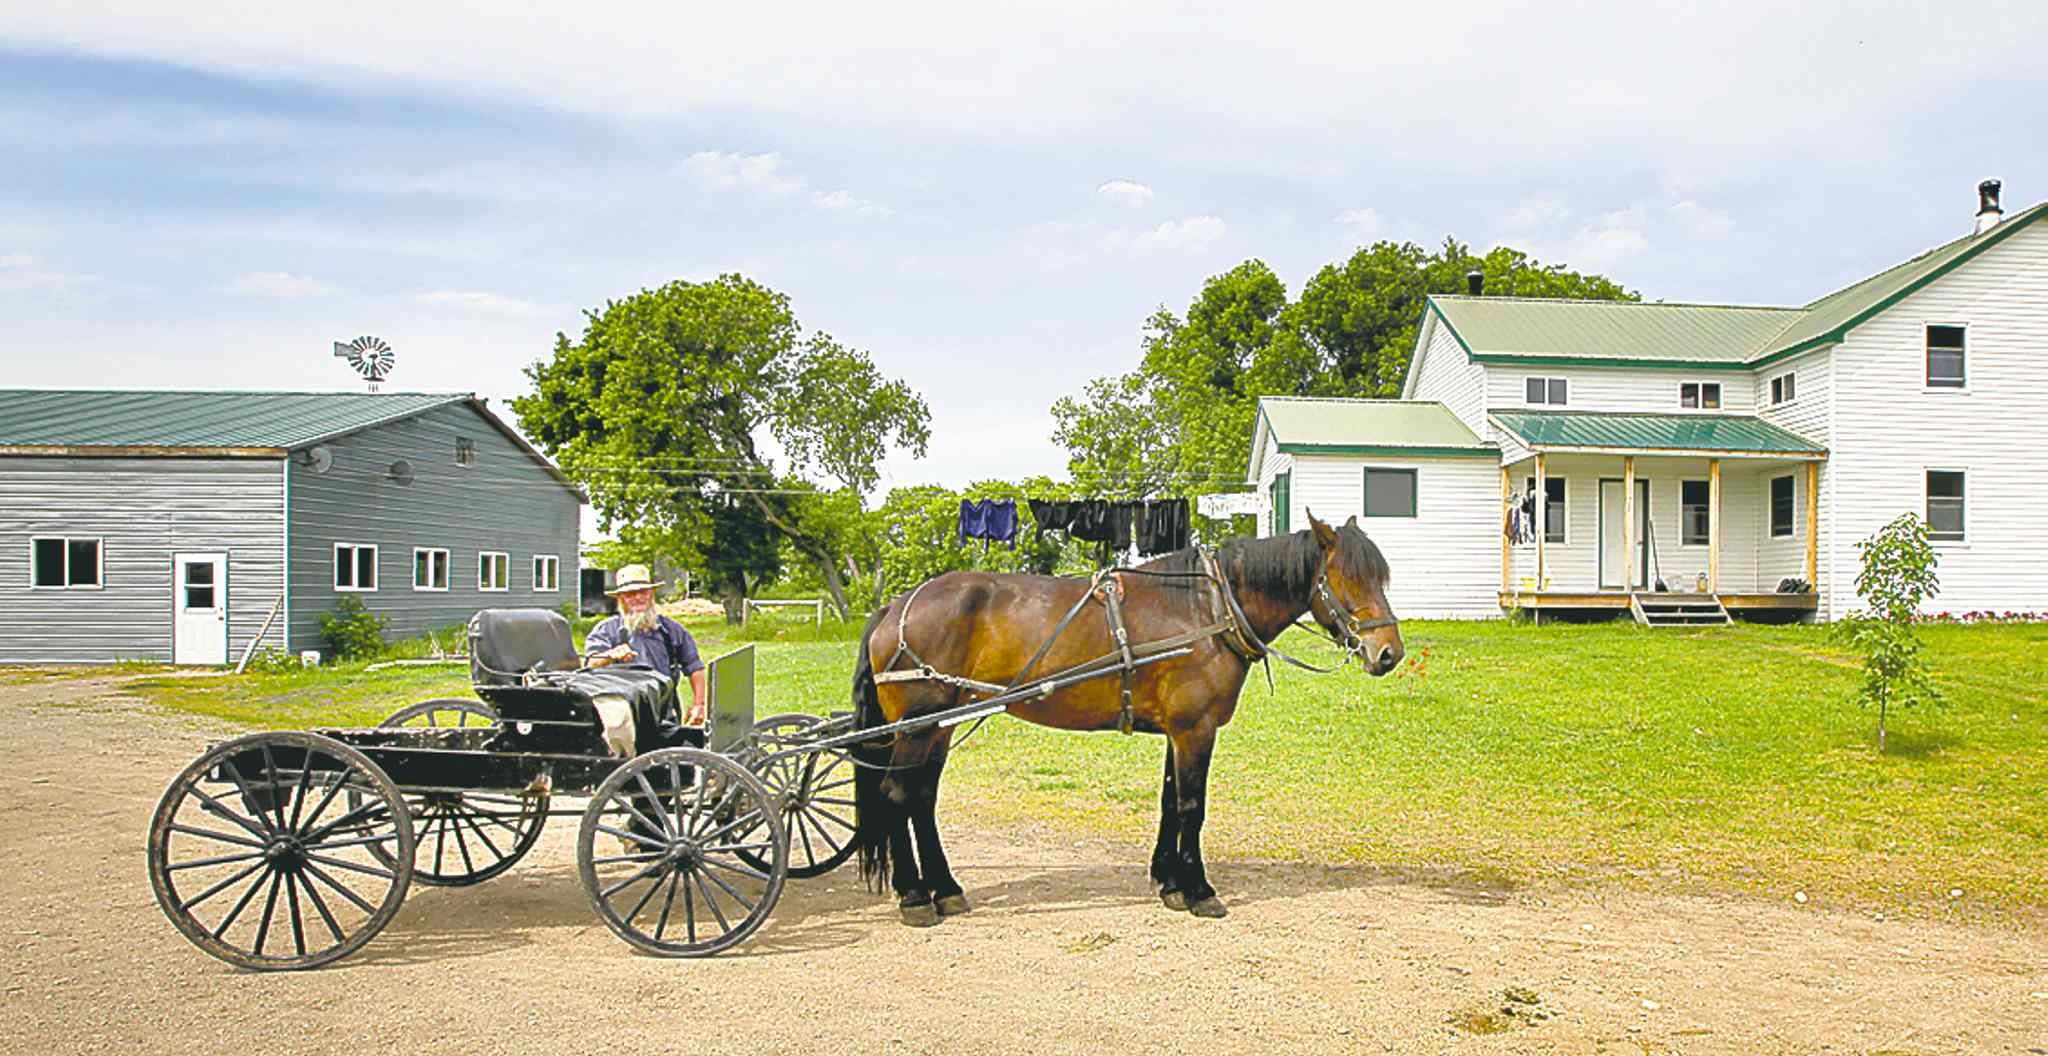 A member of the Old Order Mennonite community drives his horse-drawn buggy from his yard.